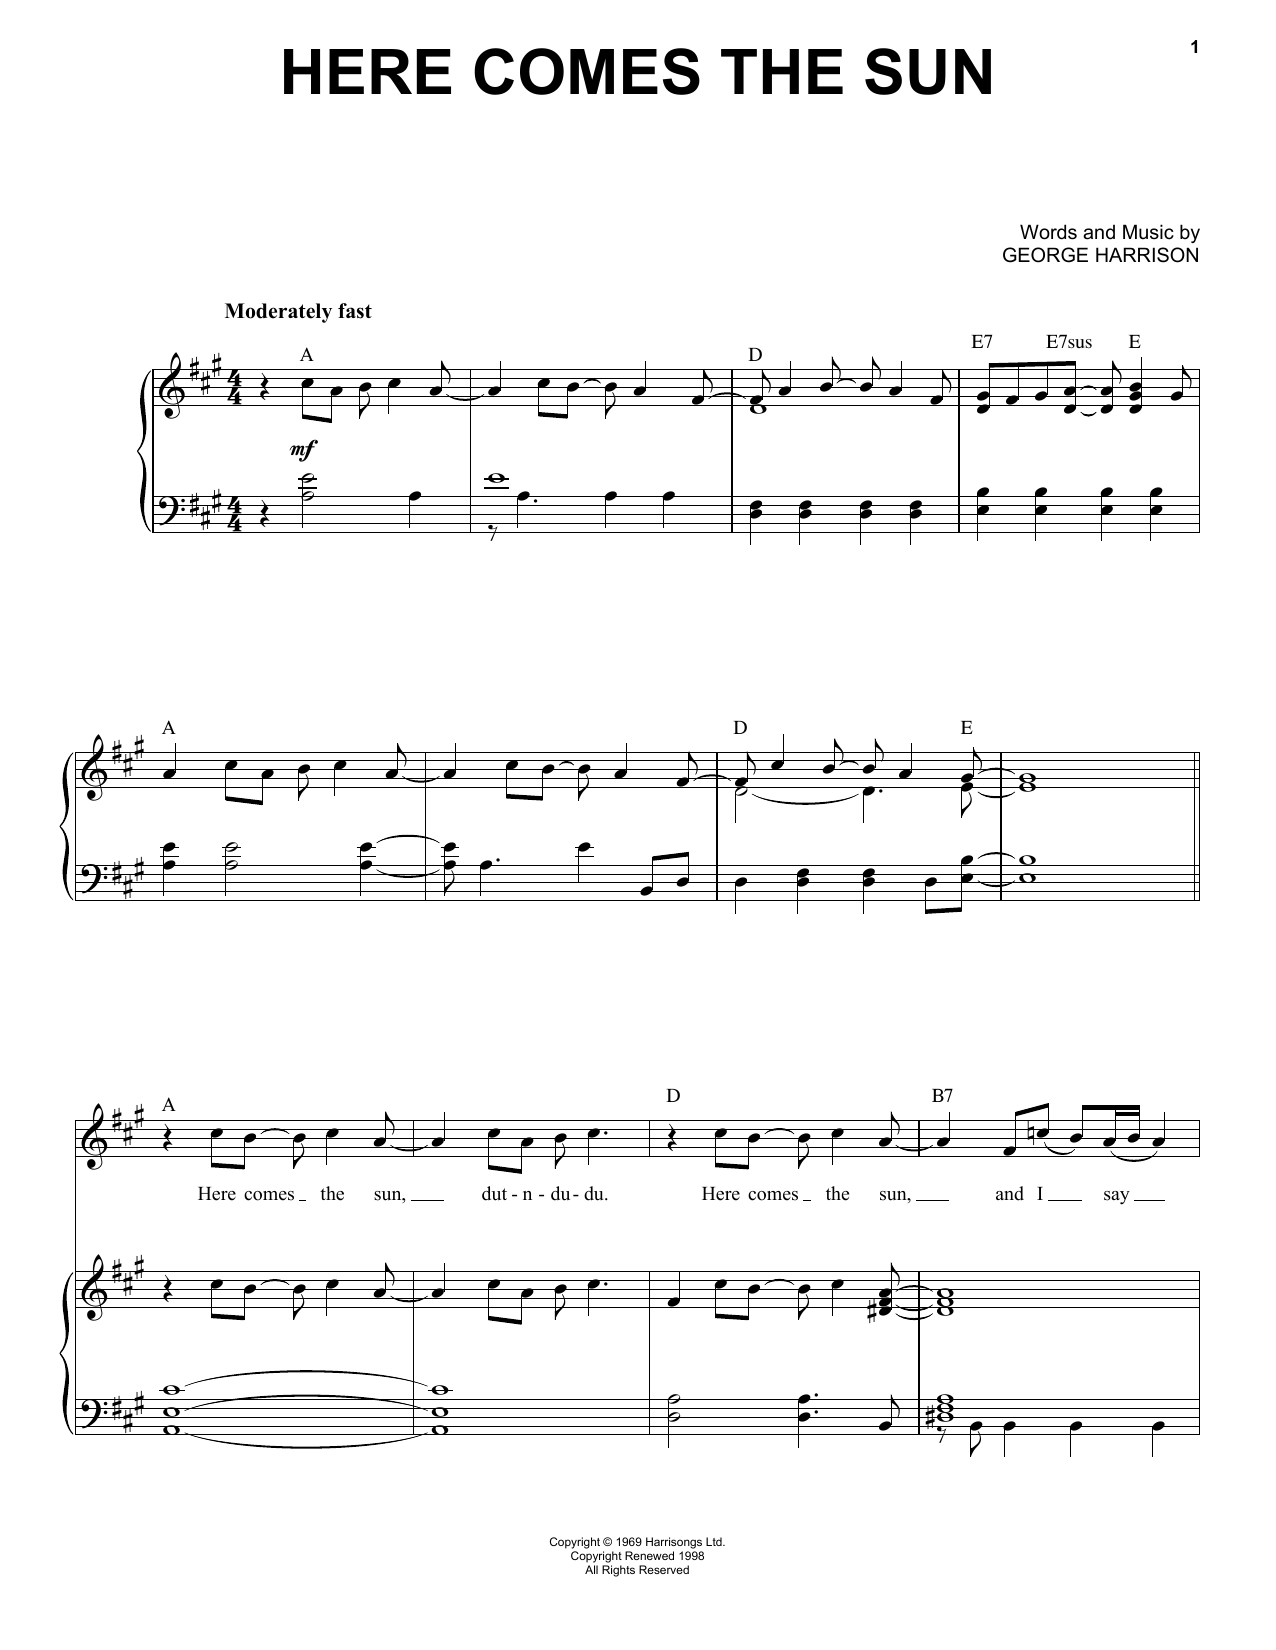 Here Comes The Sun Chords The Beatles Here Comes The Sun Sheet Music Notes Chords Download Printable Piano Vocal Sku 90971